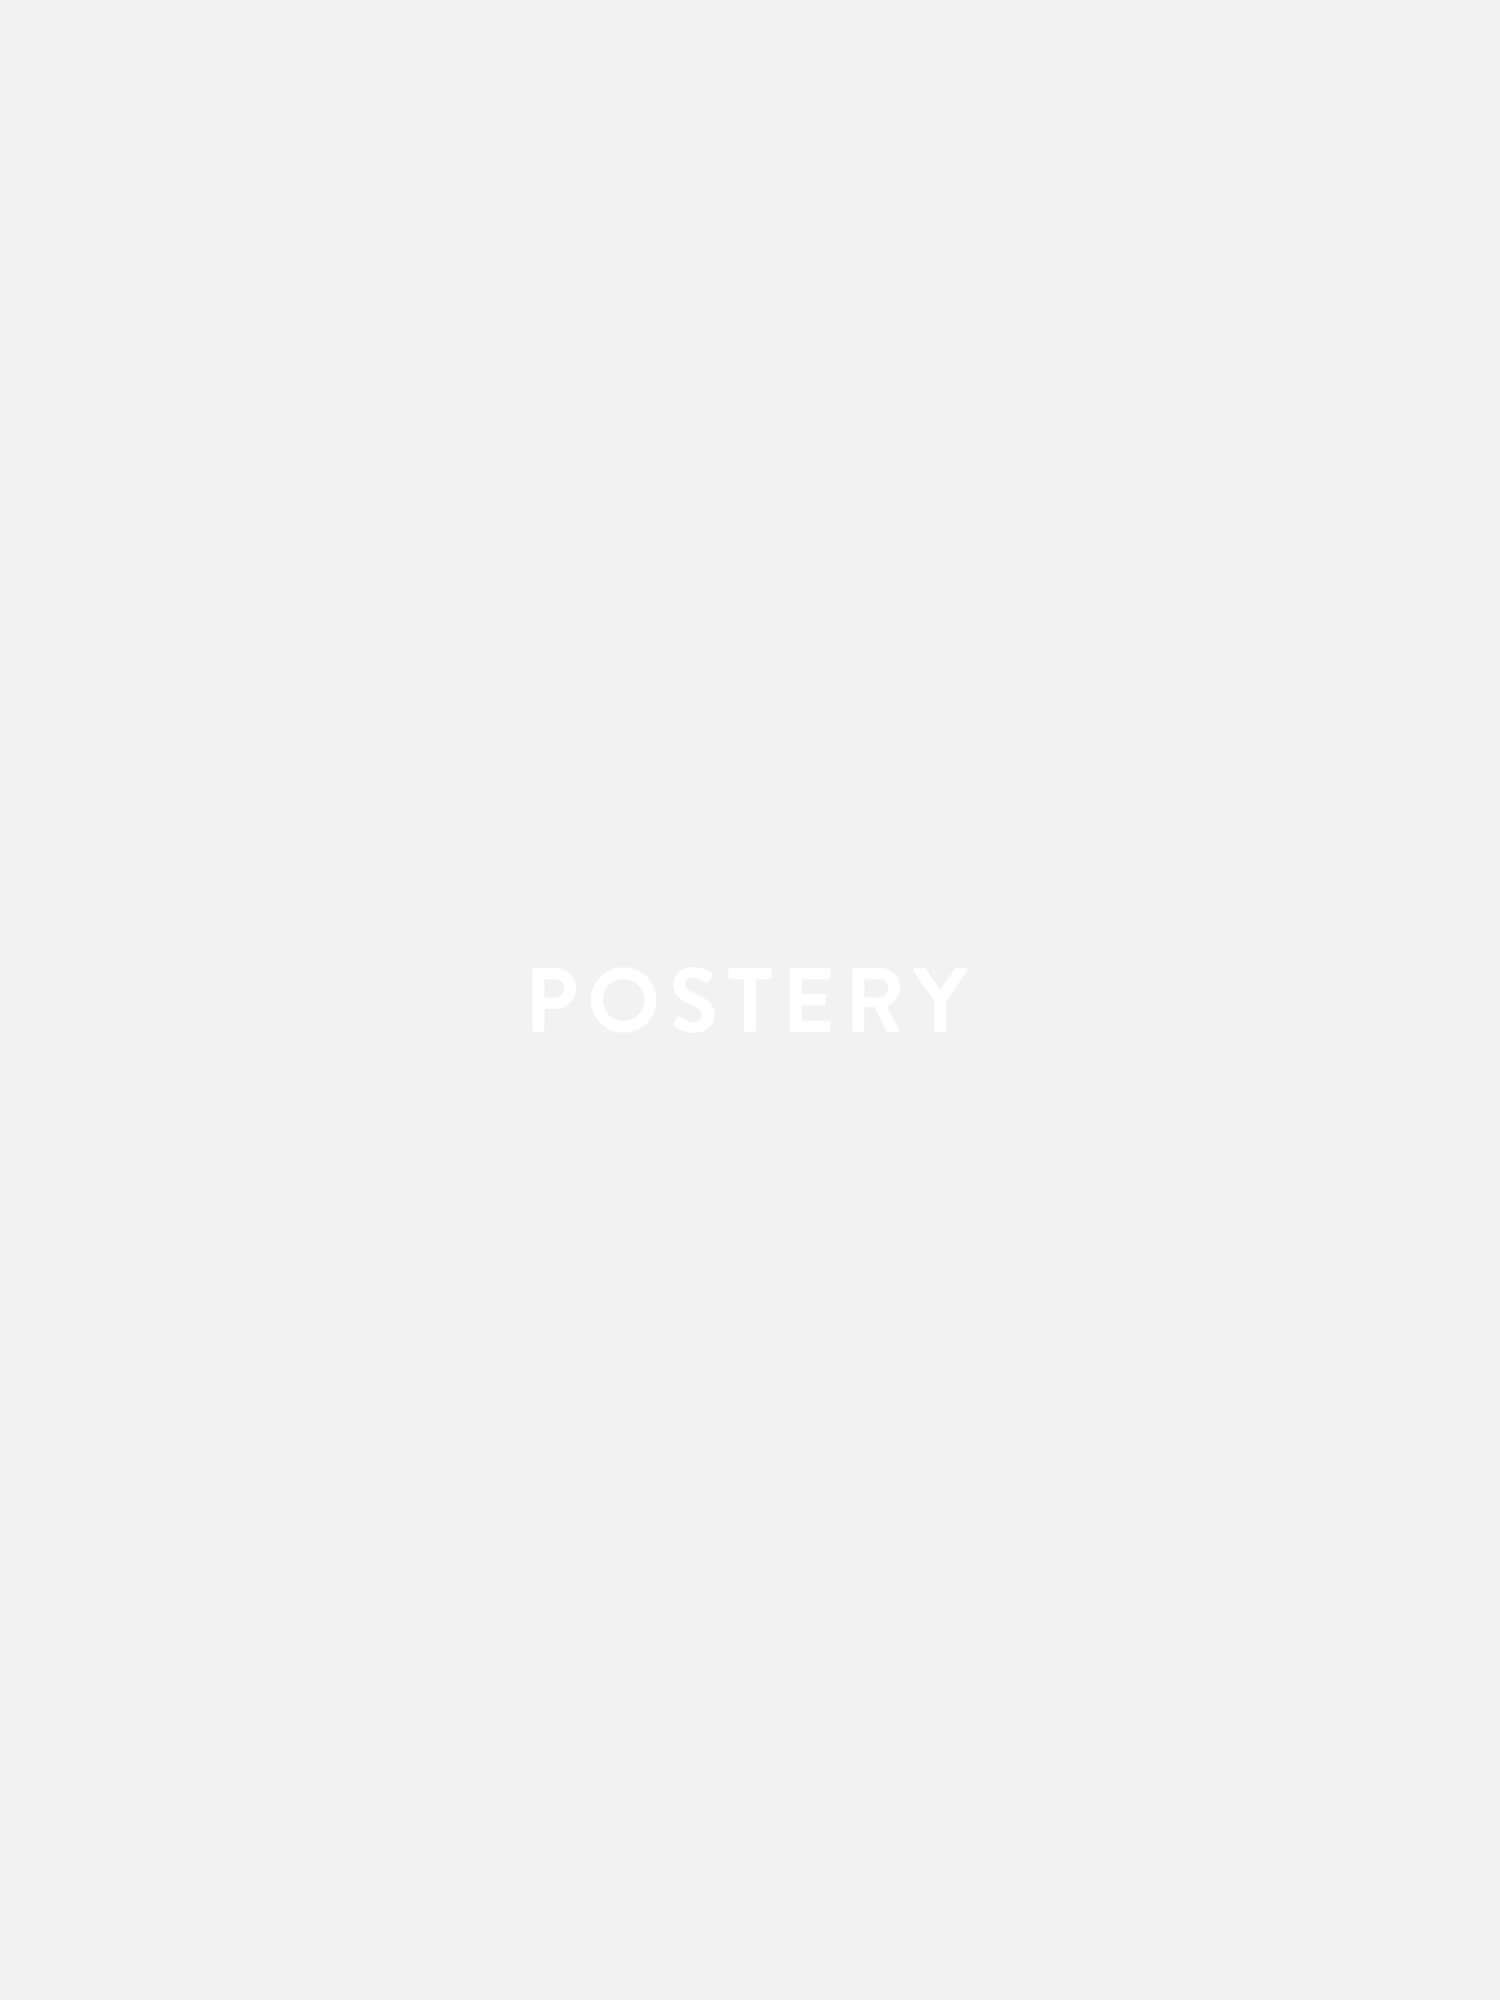 Gallery Wall #6946